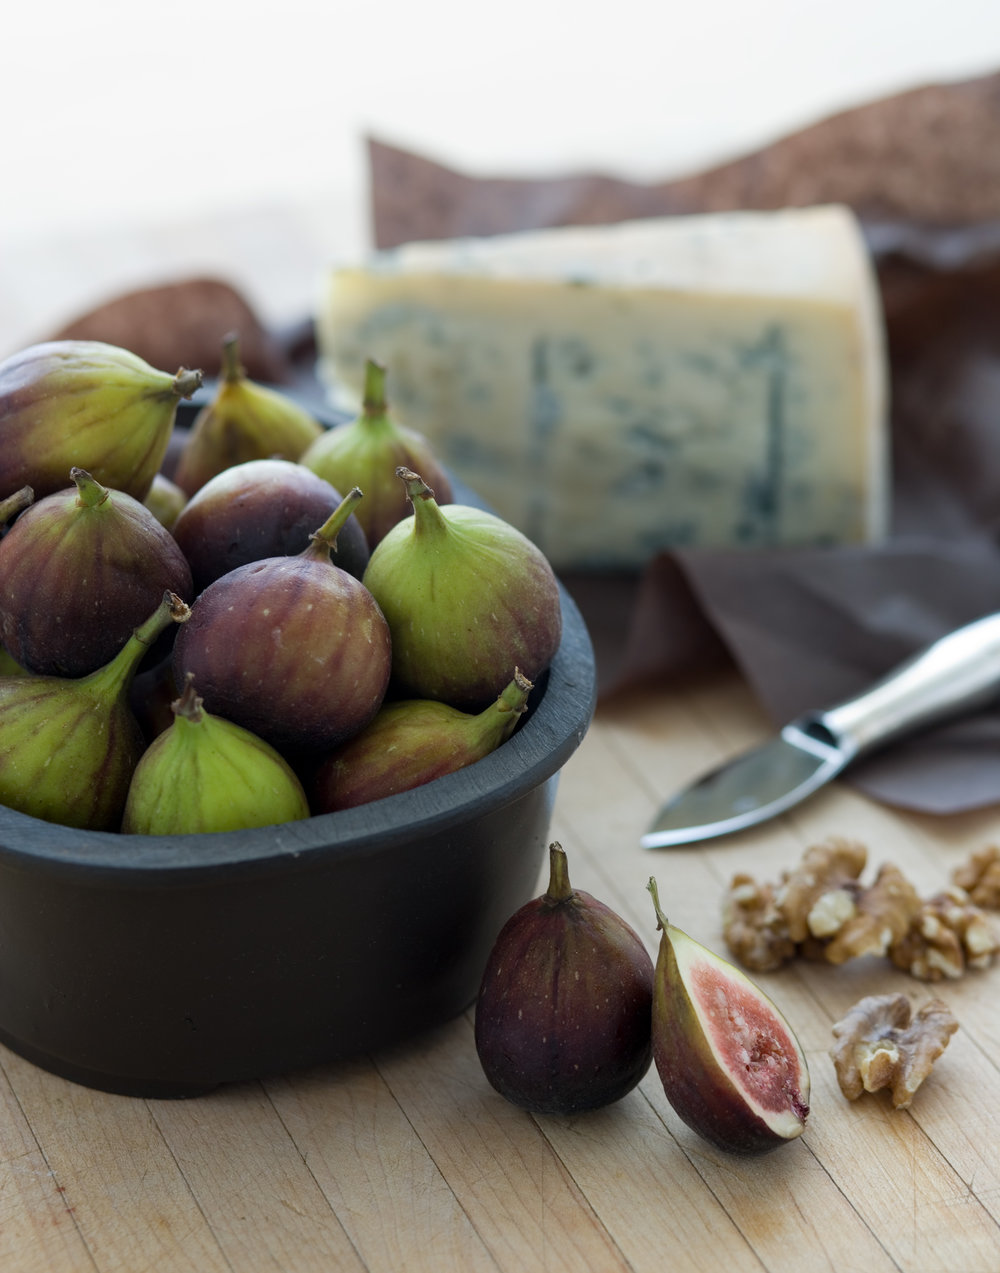 Figs ready to be eaten with blue cheese